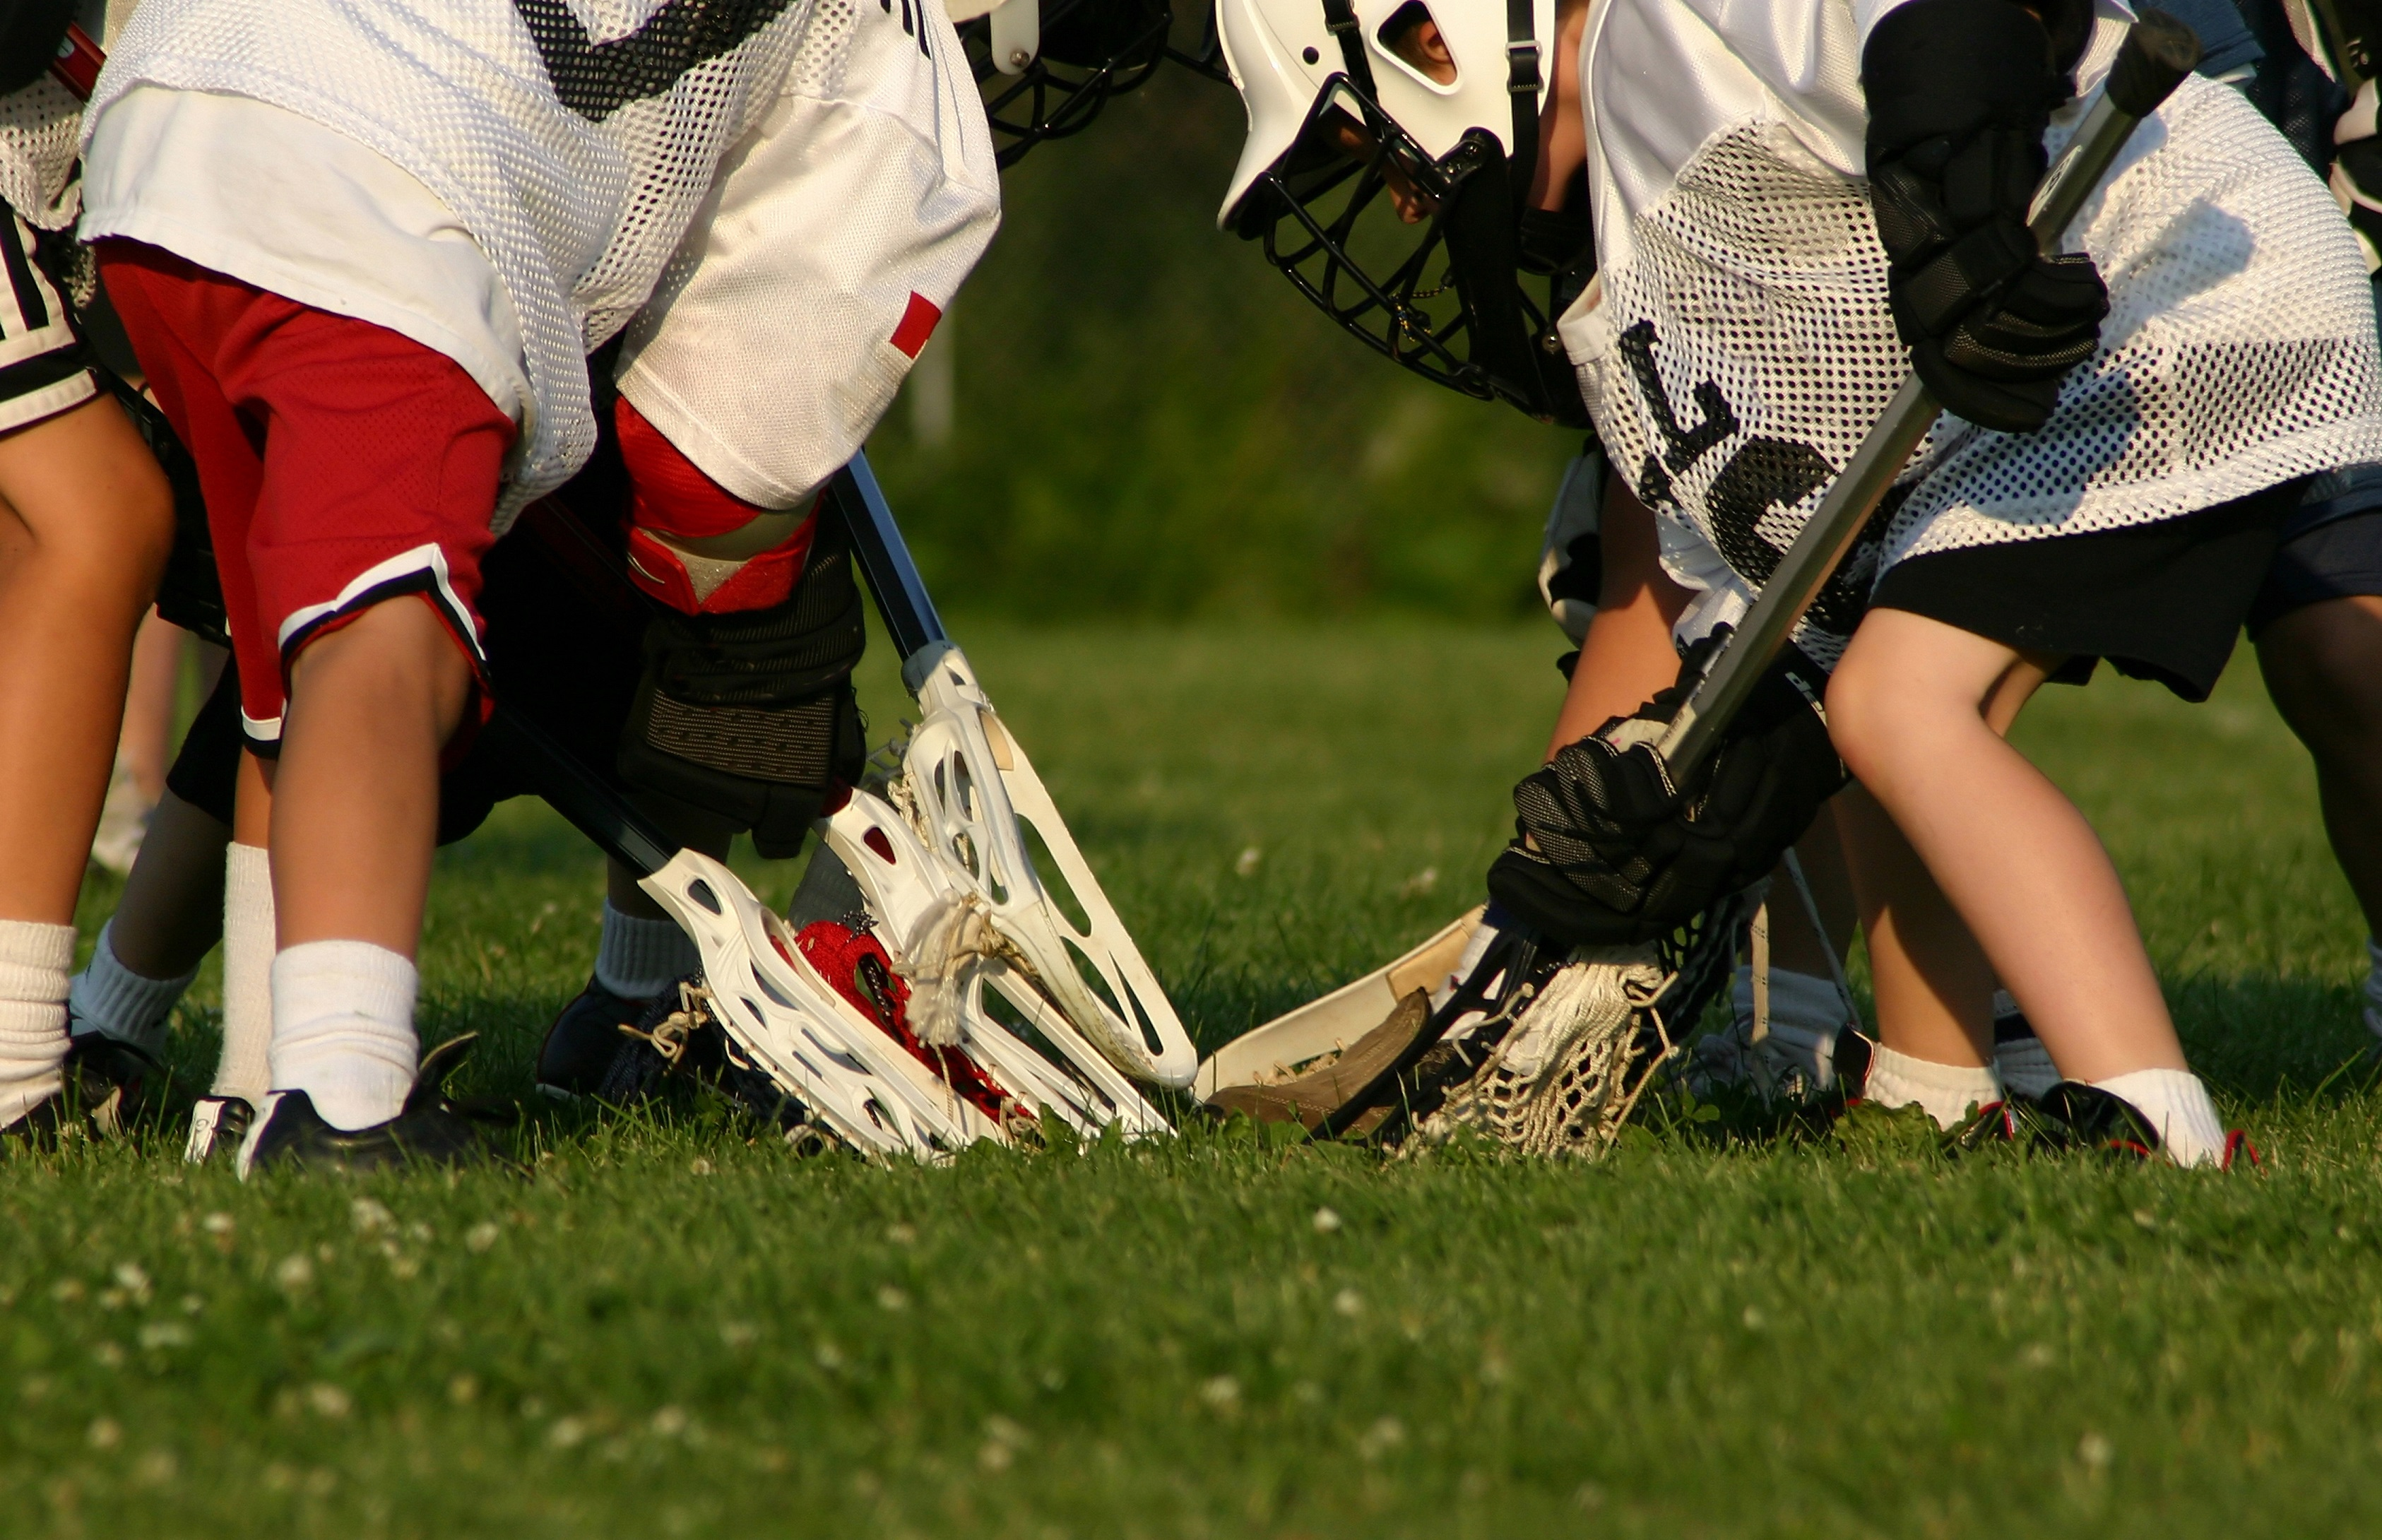 Fit - lacrosse cleats or turf shoes